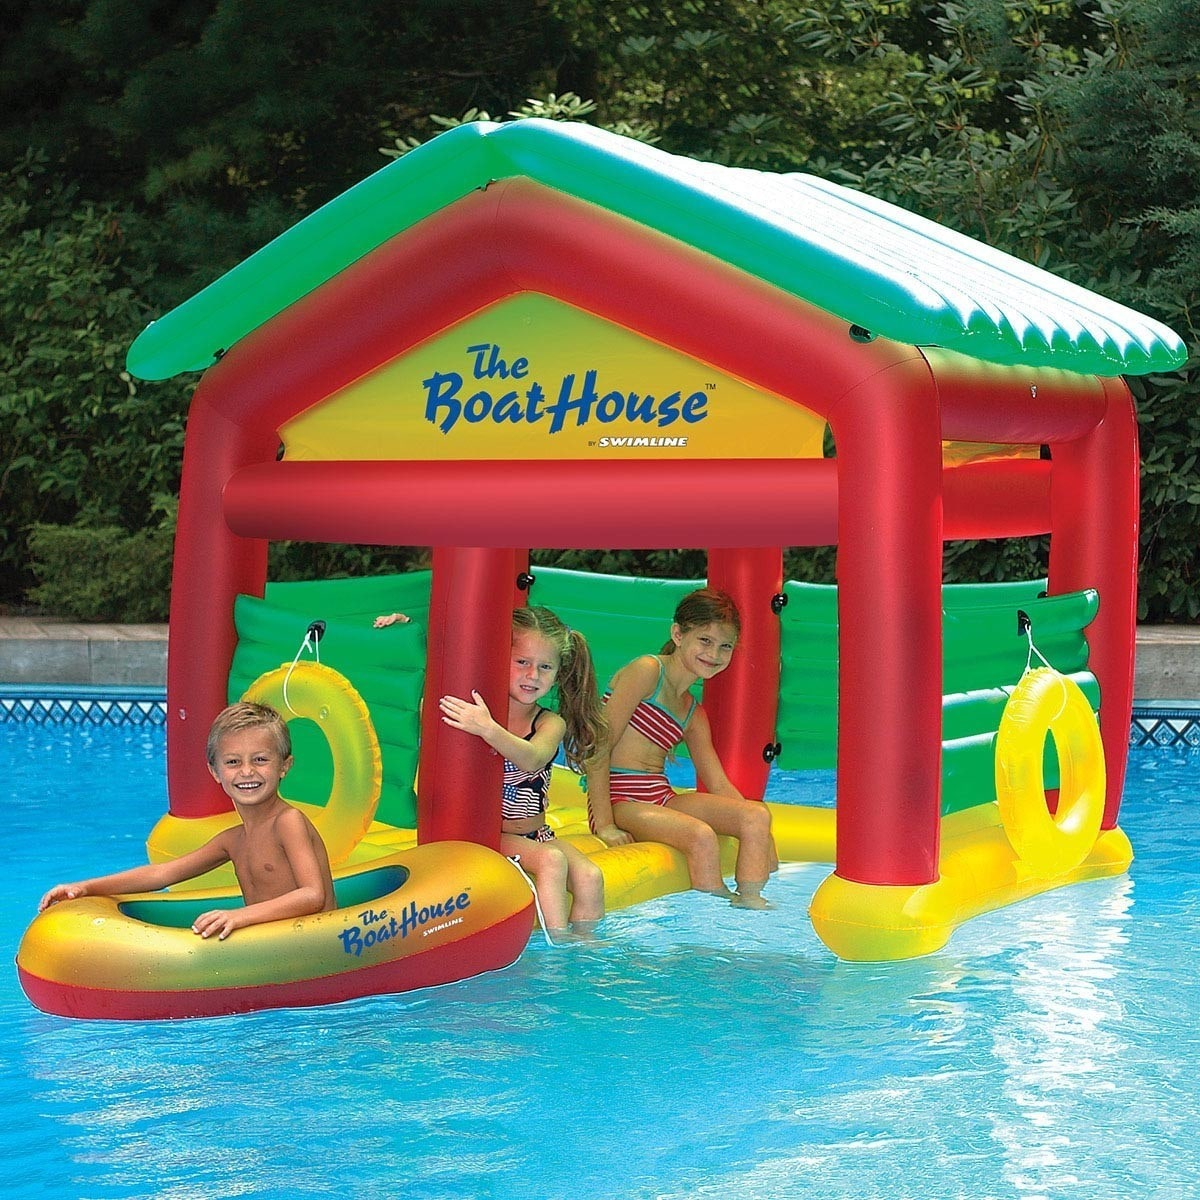 Swimline Boathouse Floating Habitat Inflatable for Swimming Pools by Overstock